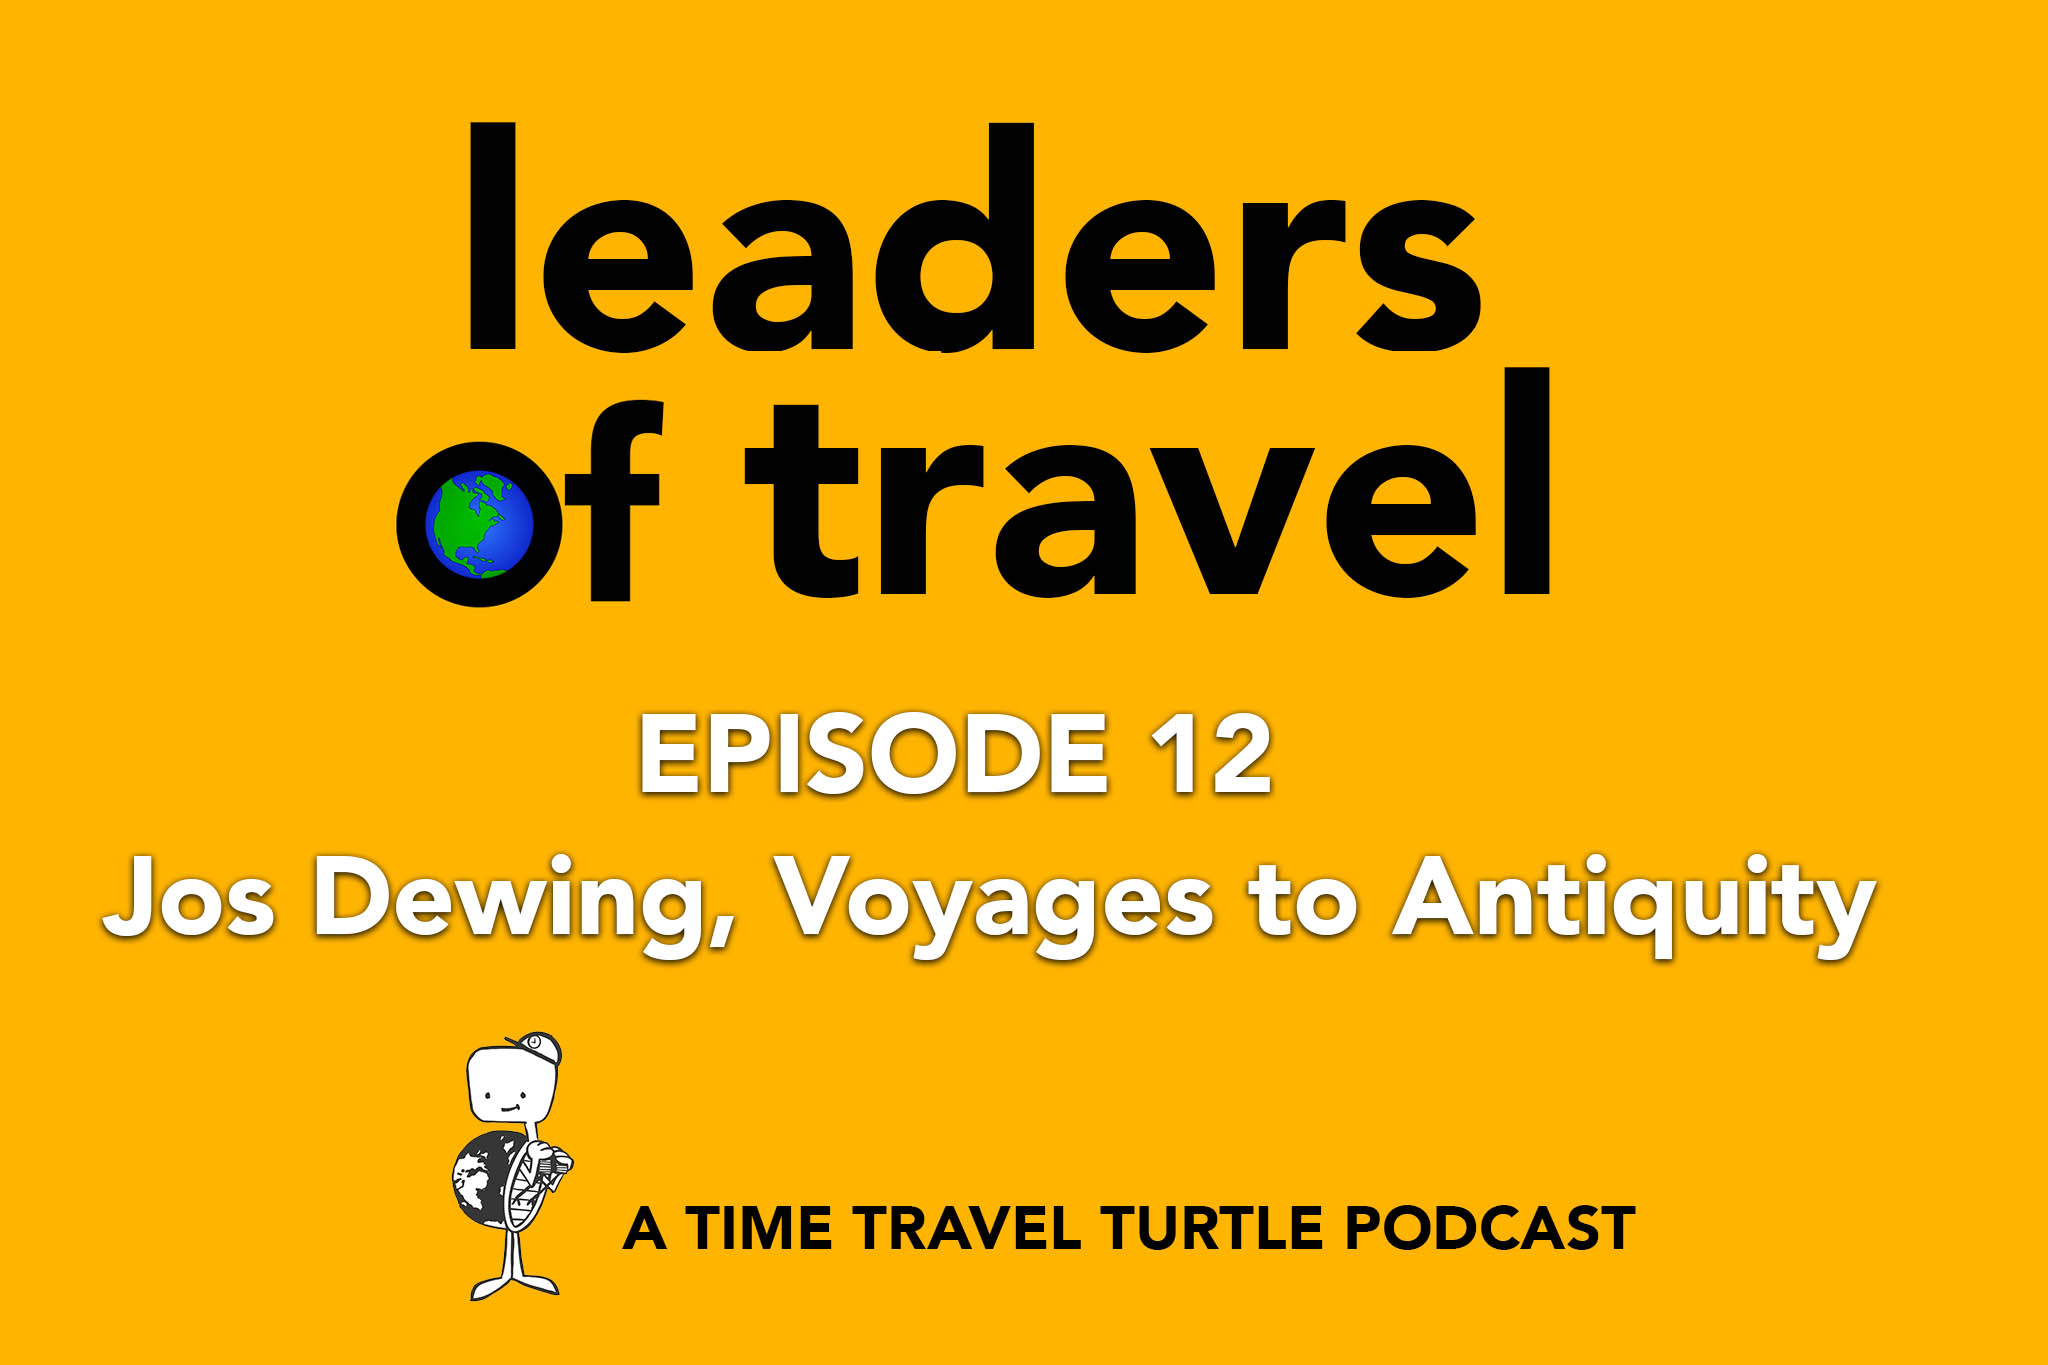 #12 – Voyages to Antiquity CEO Jos Dewing